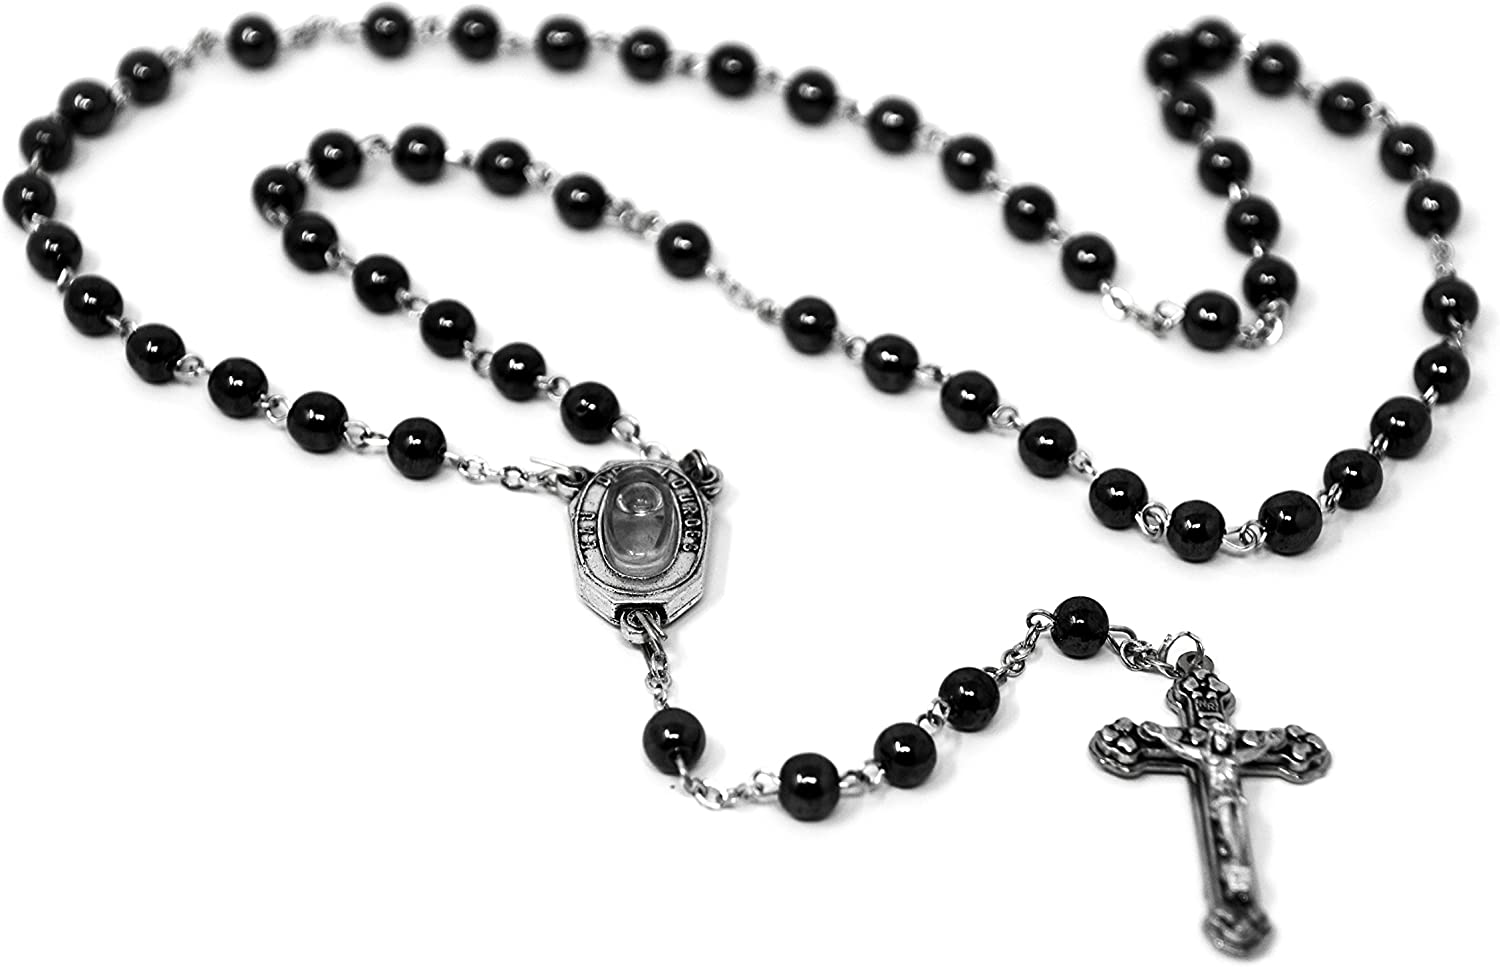 GIFTS FROM LOURDES Crystal Apparition Rosary Beads with a Virgin Mary Centre